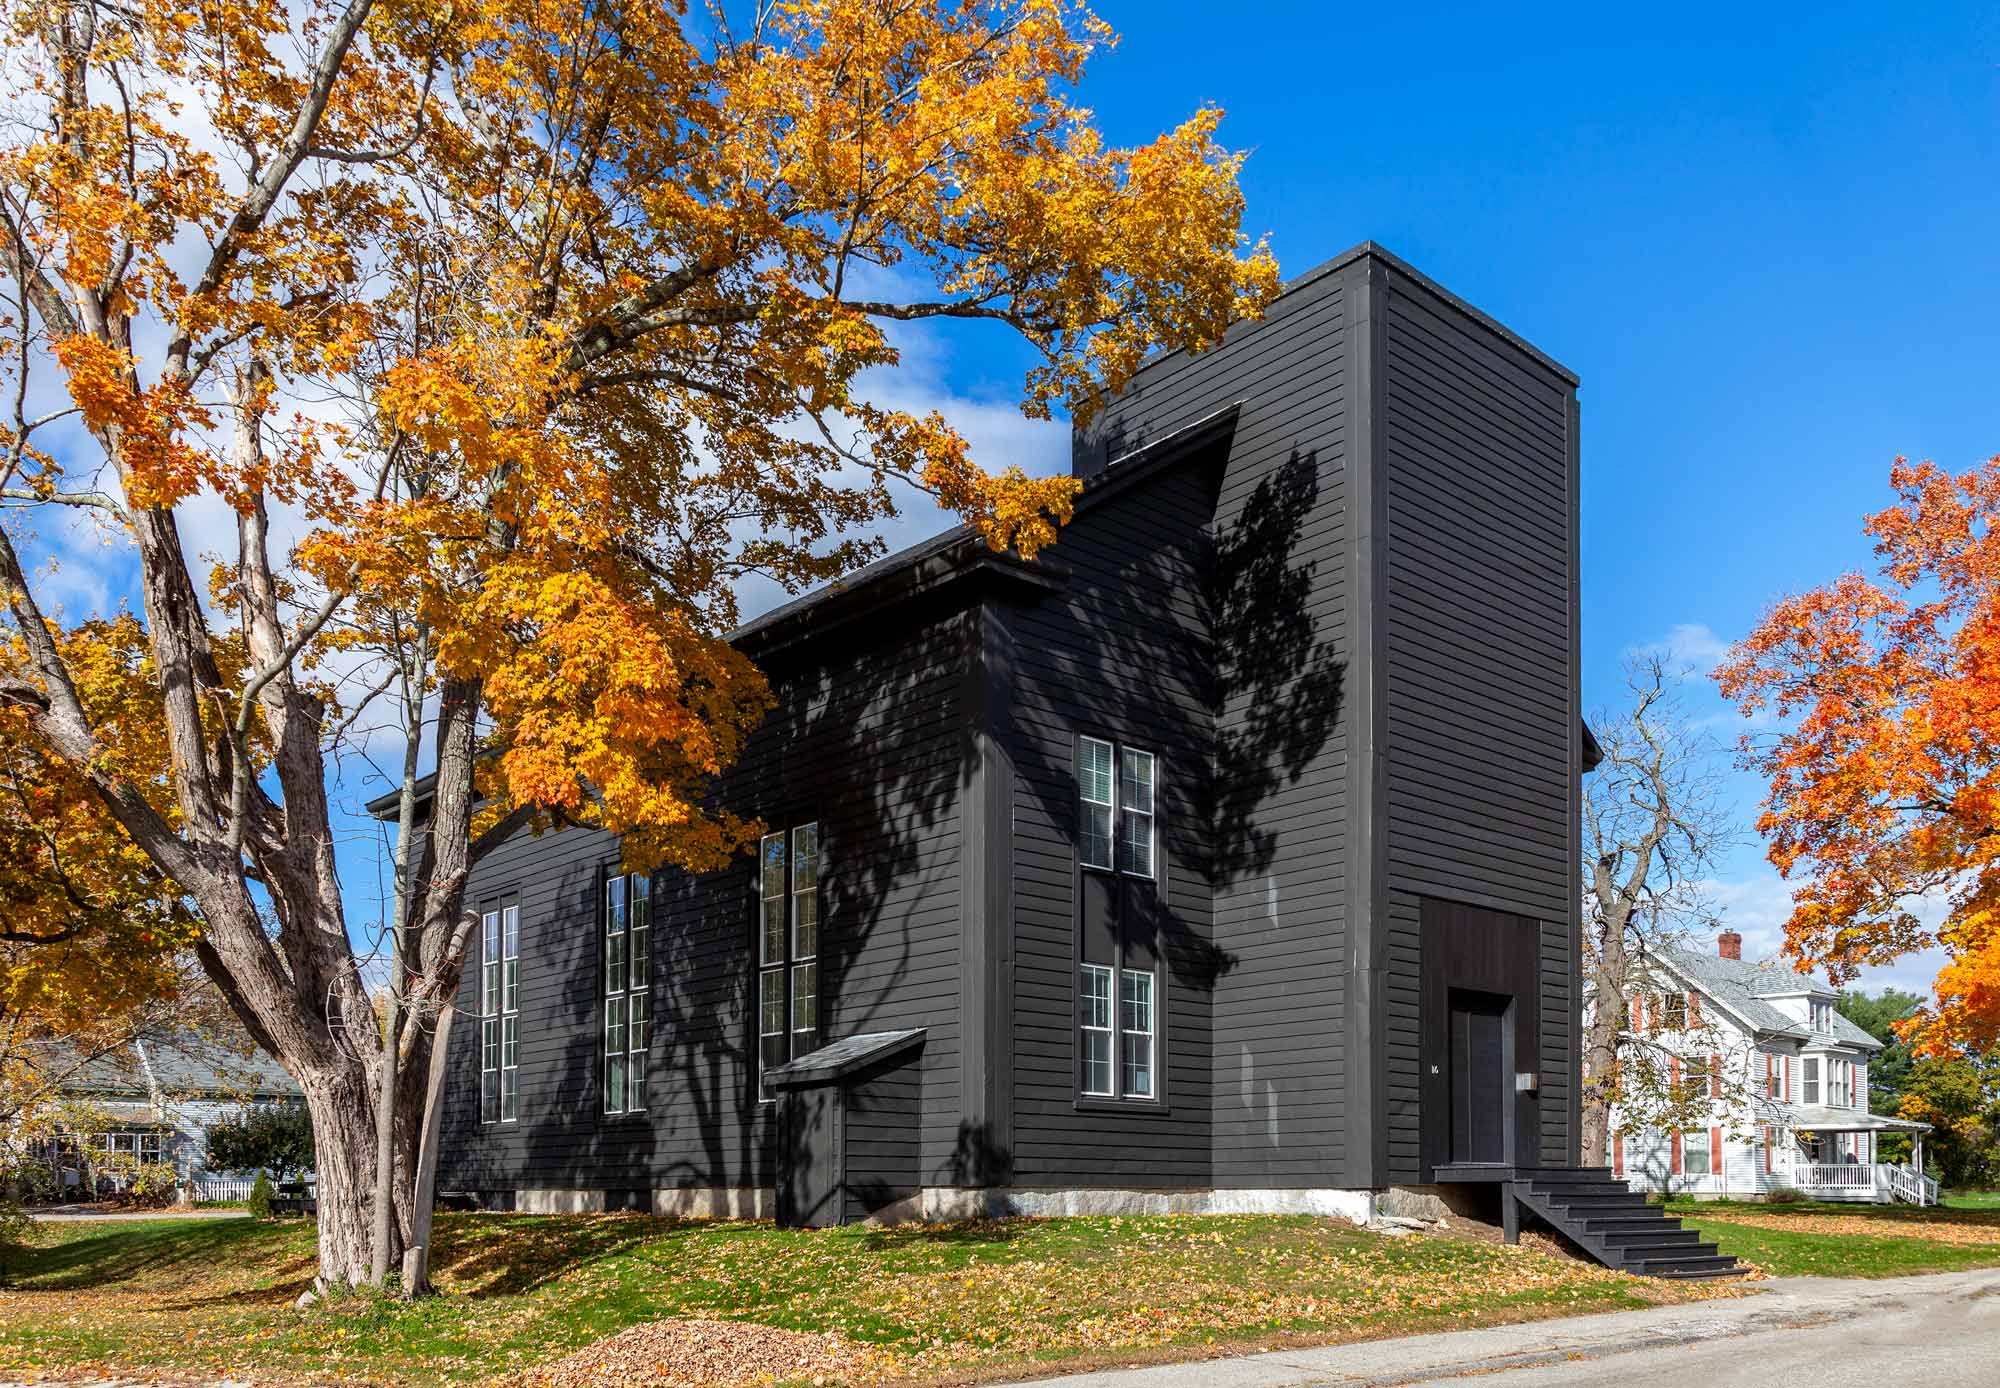 The exterior of the church, once white, McNeil had painted black, inspired by the look of Japanese fermented soot paint.